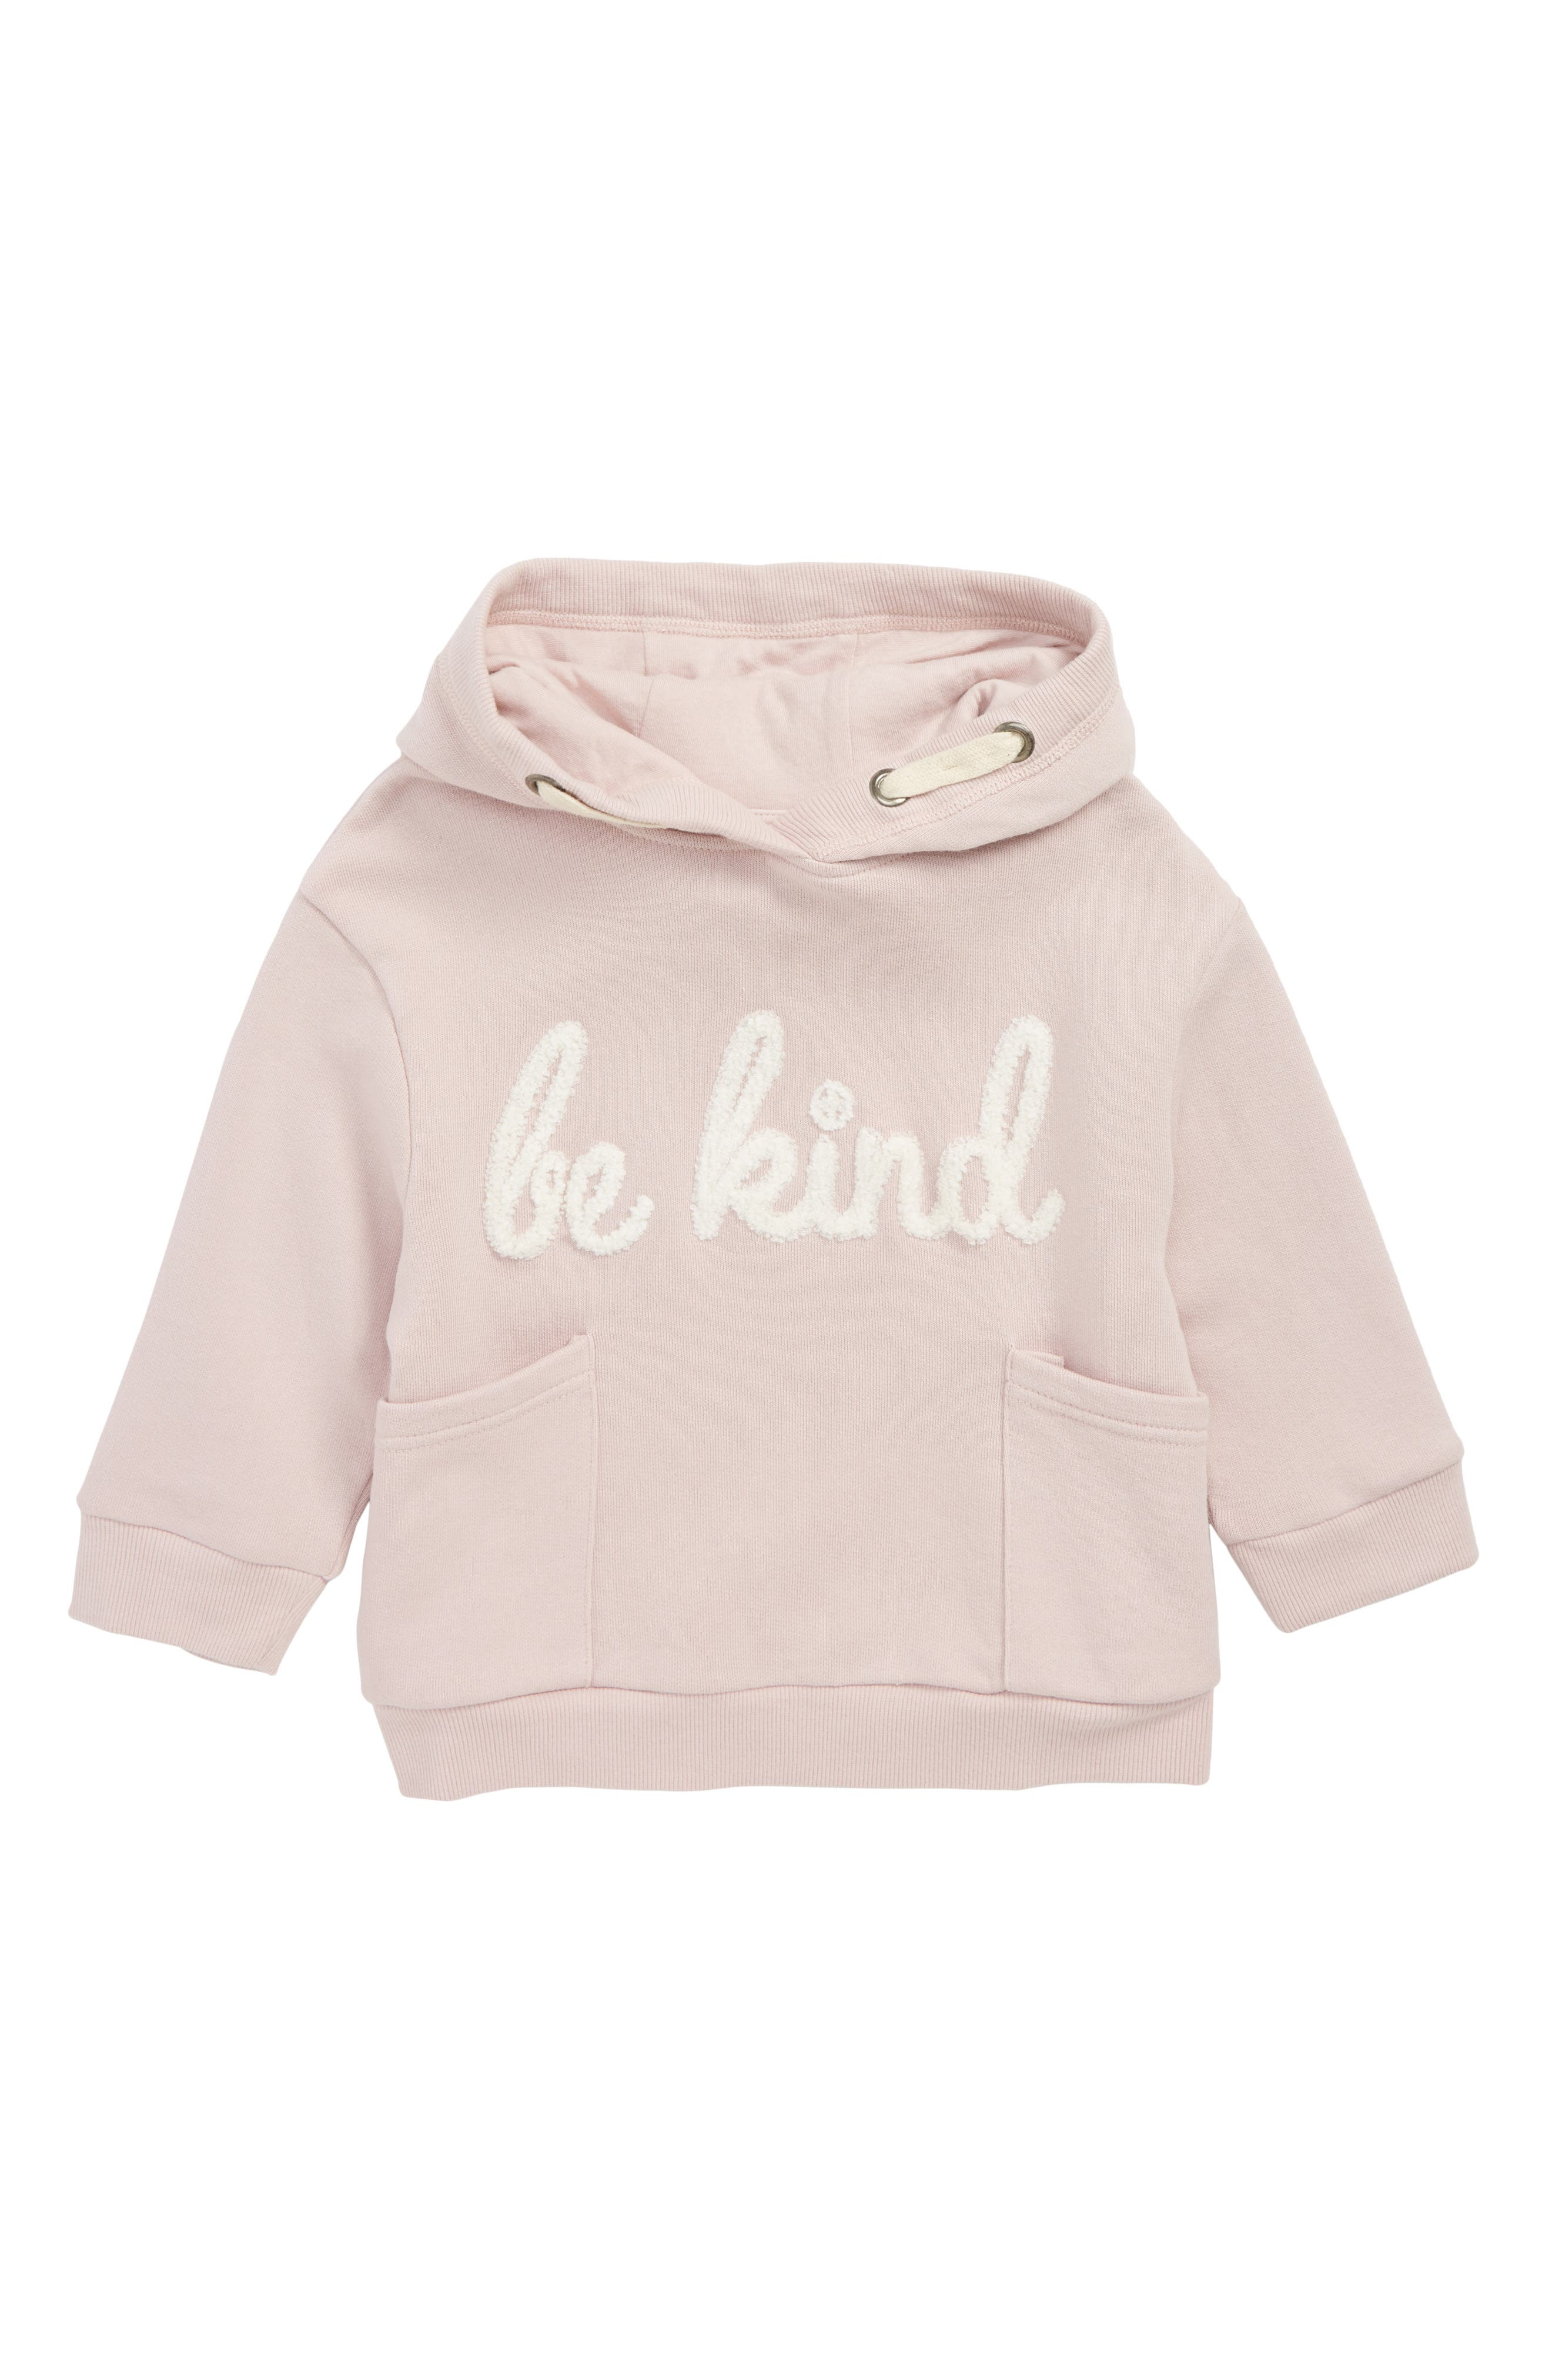 Be Kind Hoodie,                             Main thumbnail 1, color,                             PALE PINK